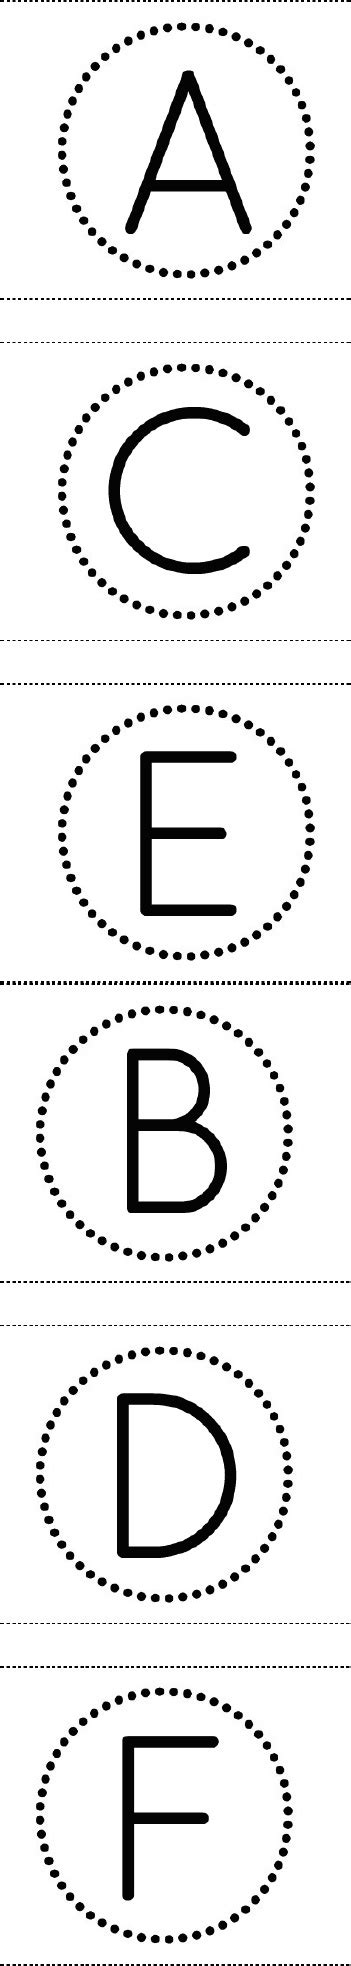 printable letters in circles free printable circle banner alphabet for making